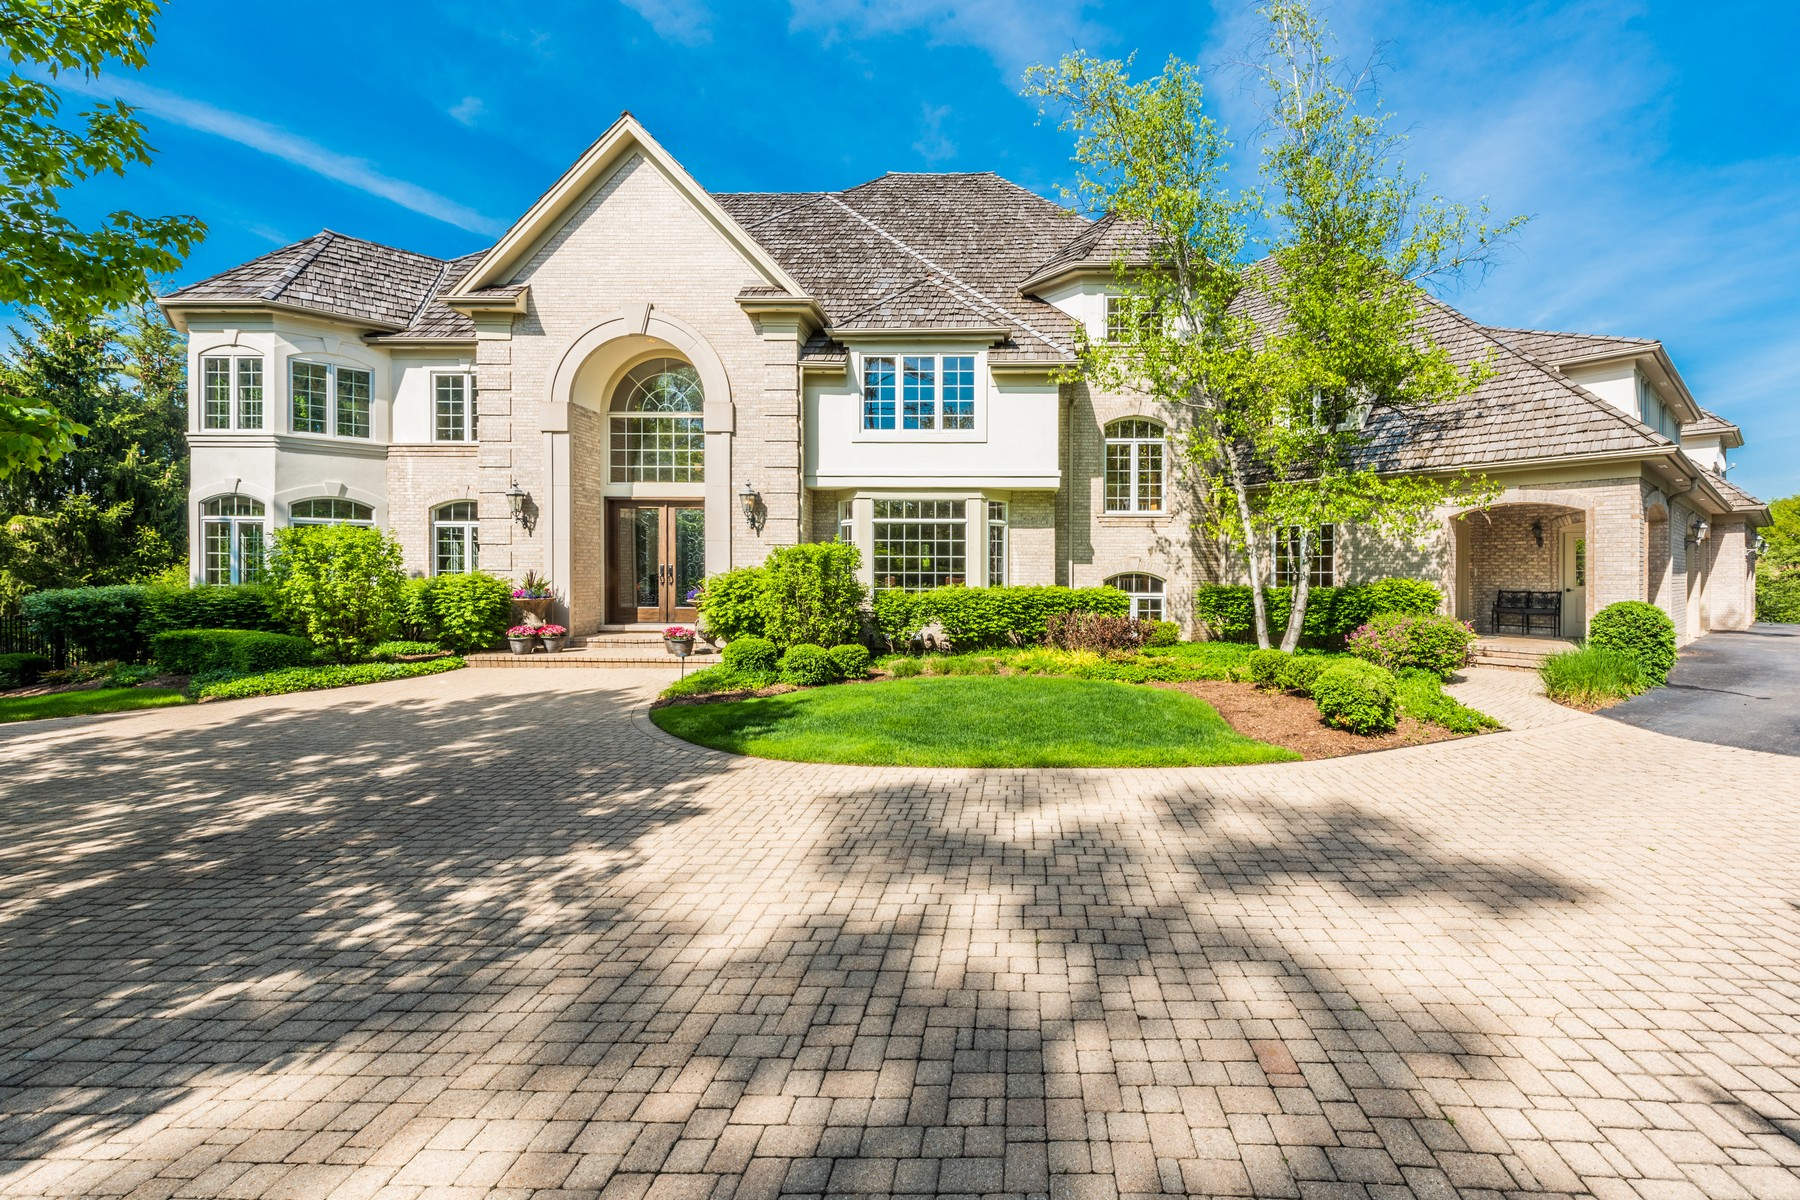 Single Family Homes for Sale at Exterior is a true oasis 44 Marbridge Court North Barrington, Illinois 60010 United States